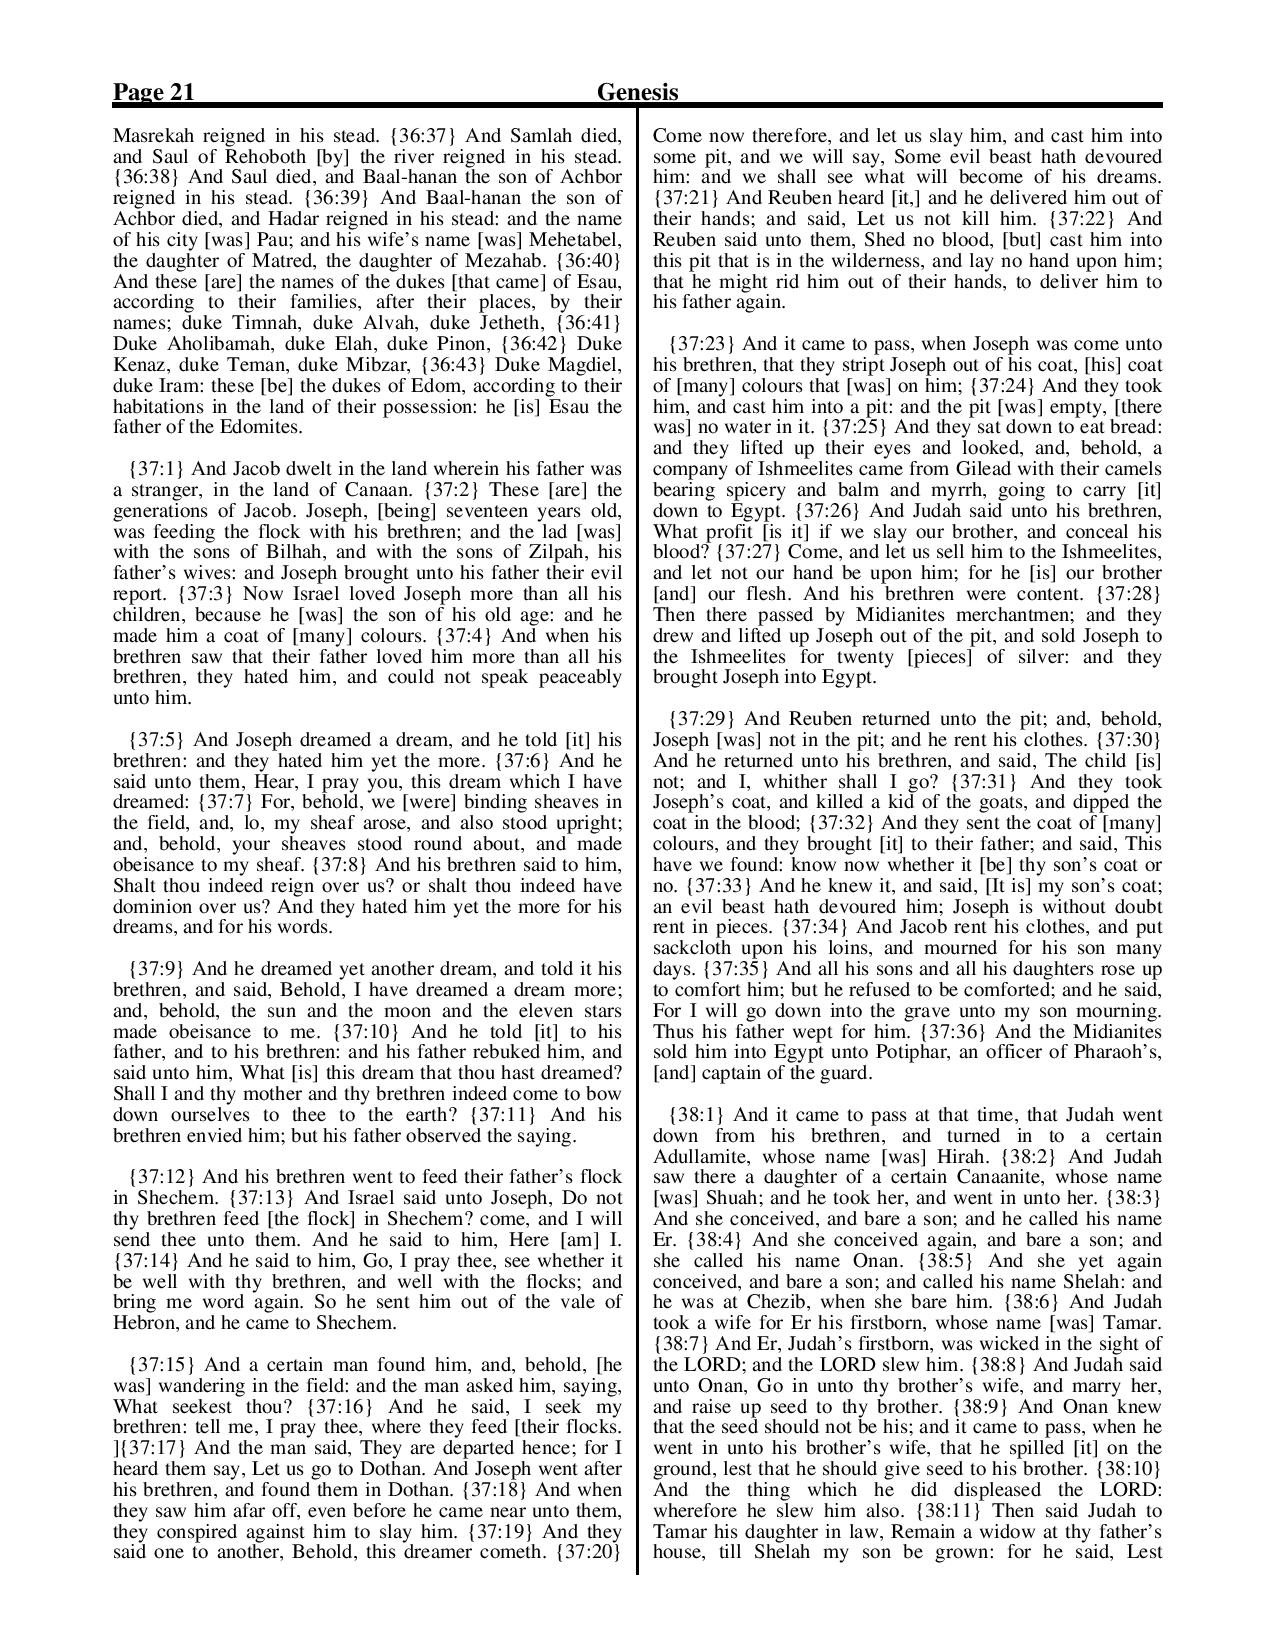 King-James-Bible-KJV-Bible-PDF-page-042